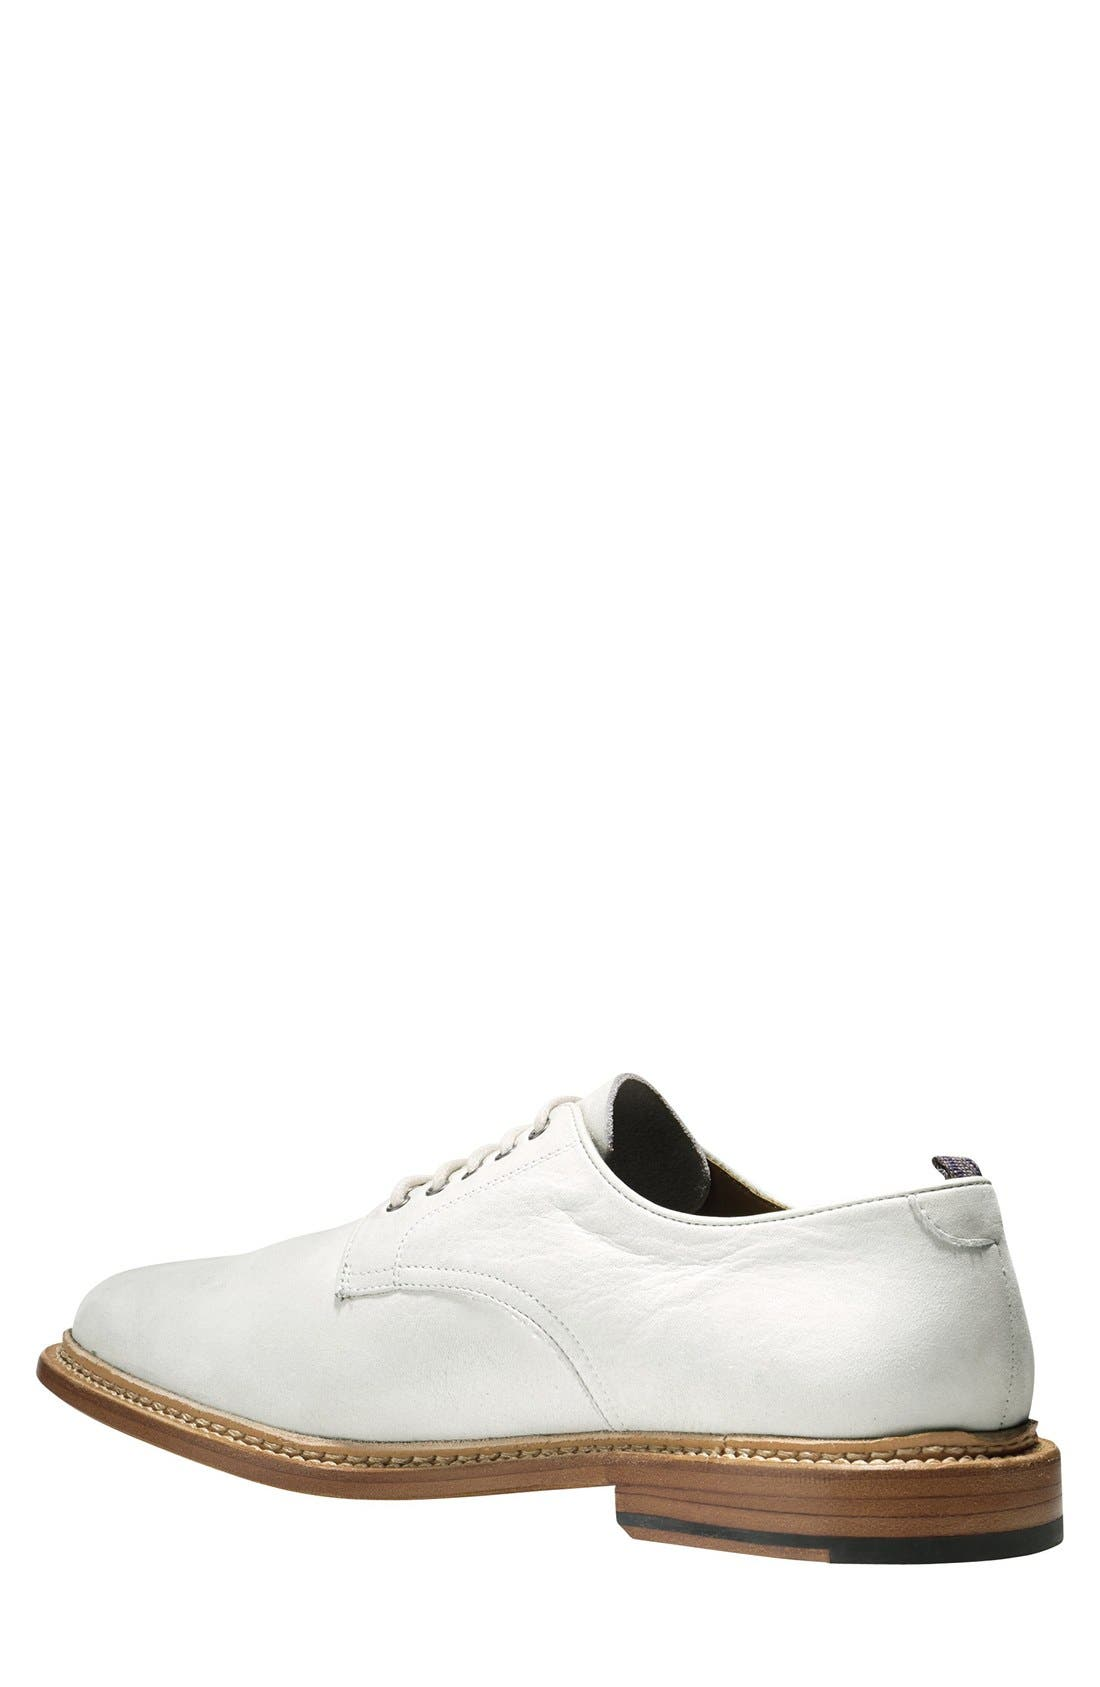 'Willet' Nubuck Plain Toe Derby,                             Alternate thumbnail 3, color,                             Ivory